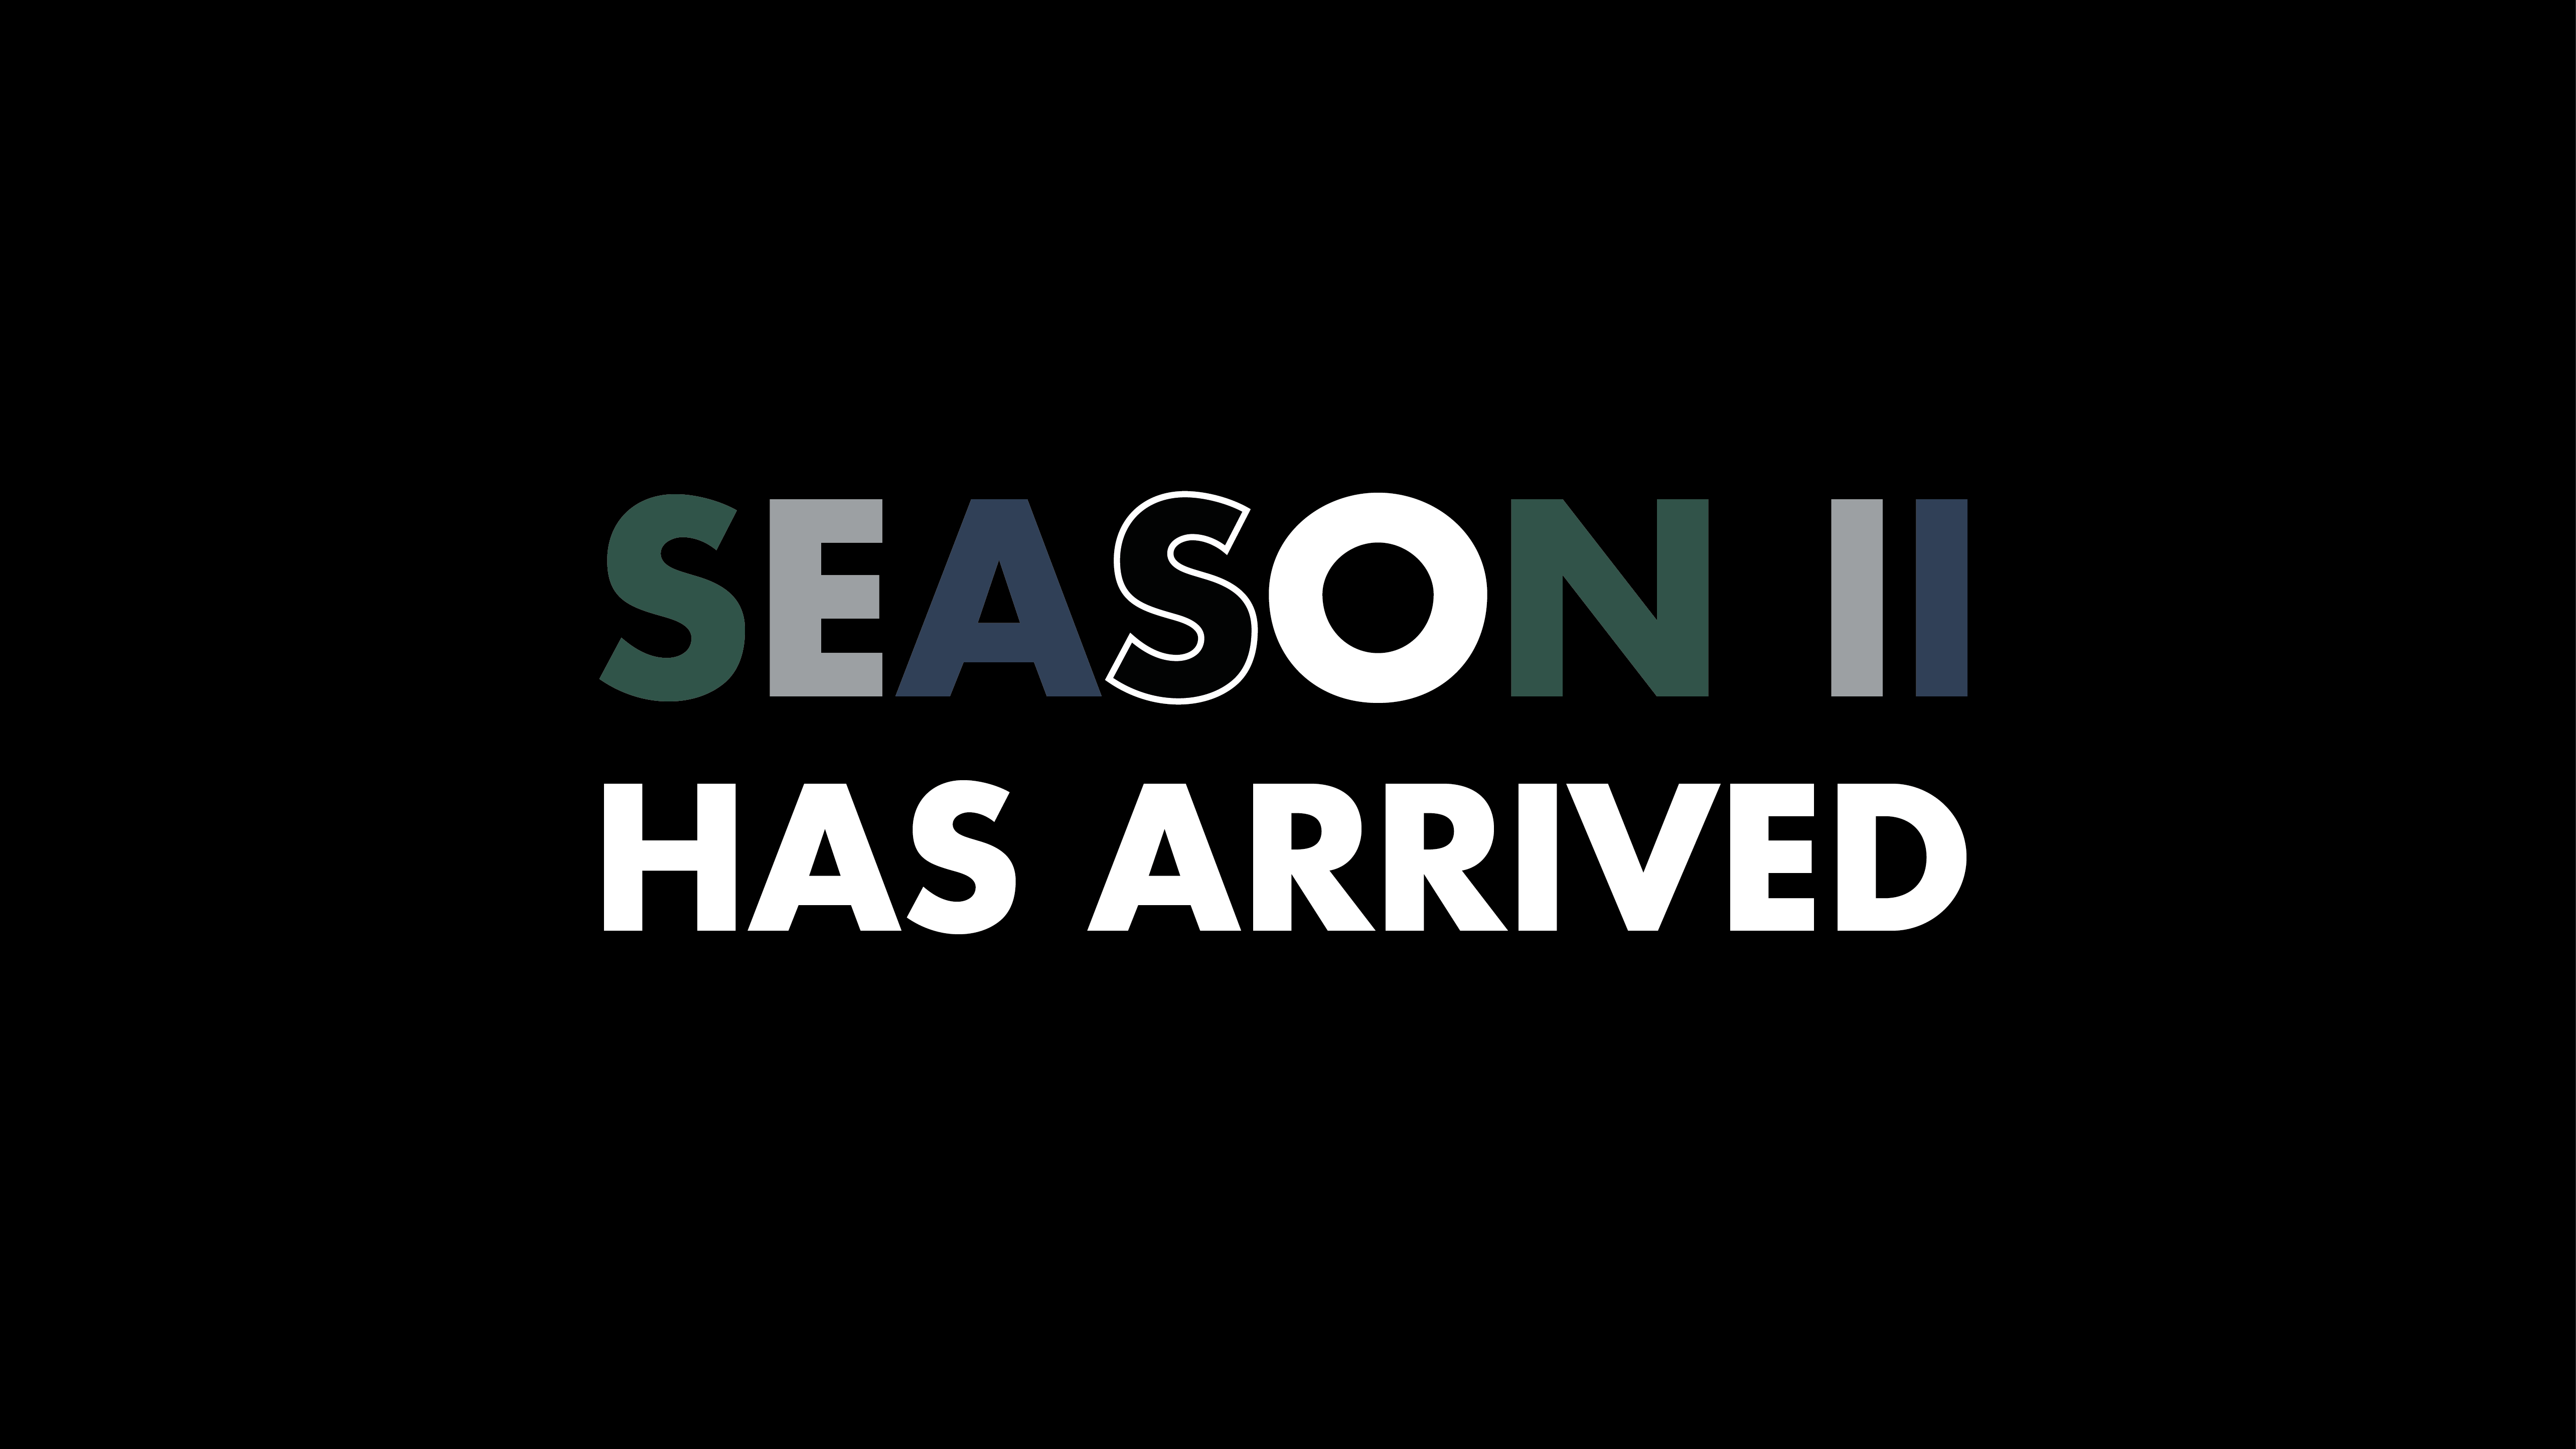 Season II has arrived - Cryppify